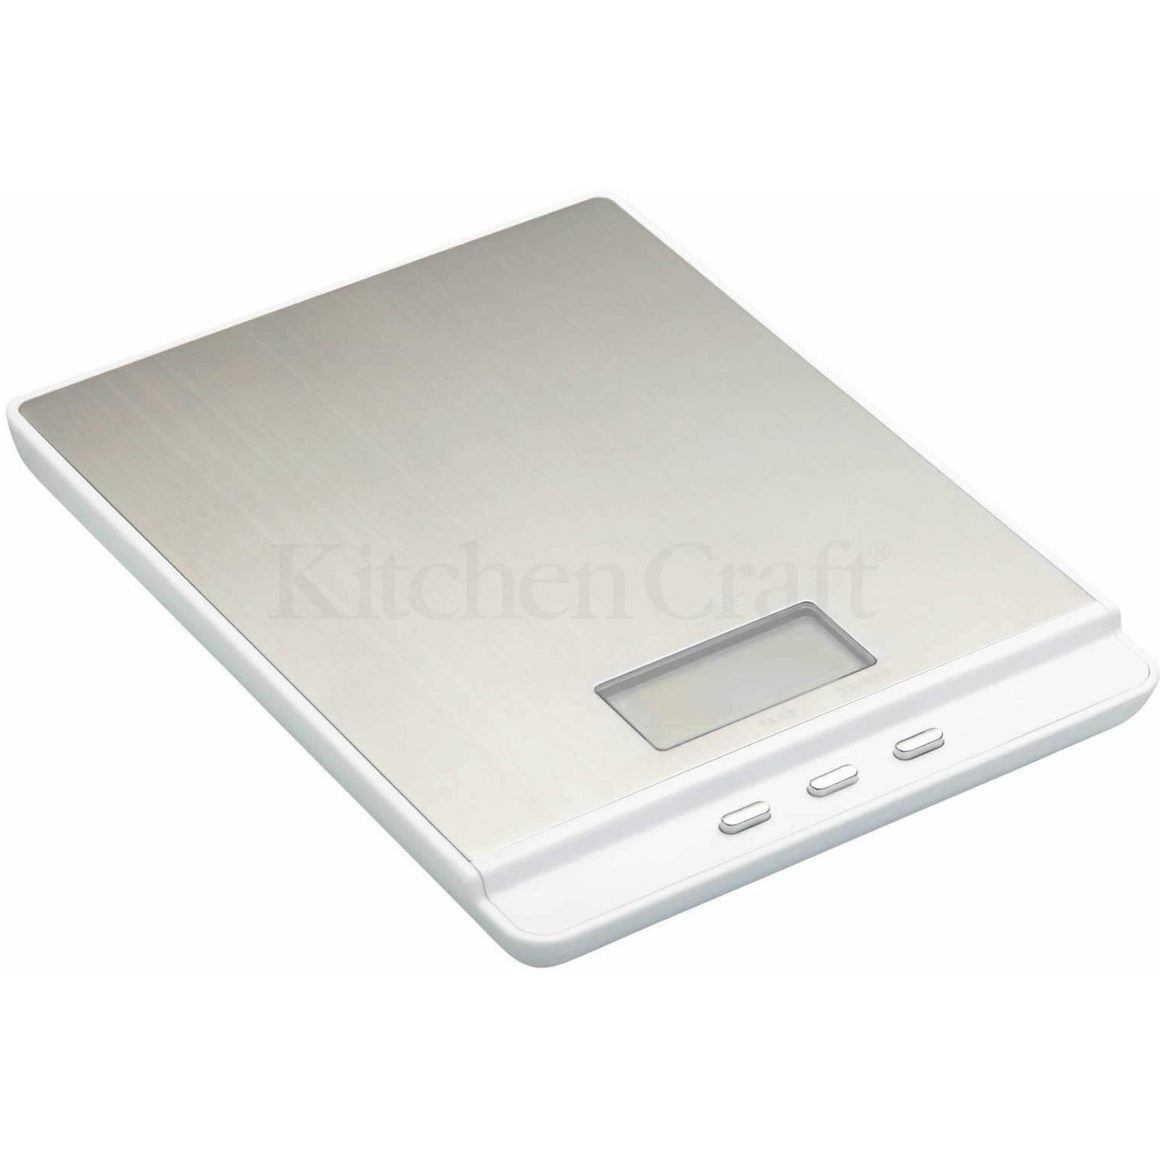 KitchenCraft Platform Scales